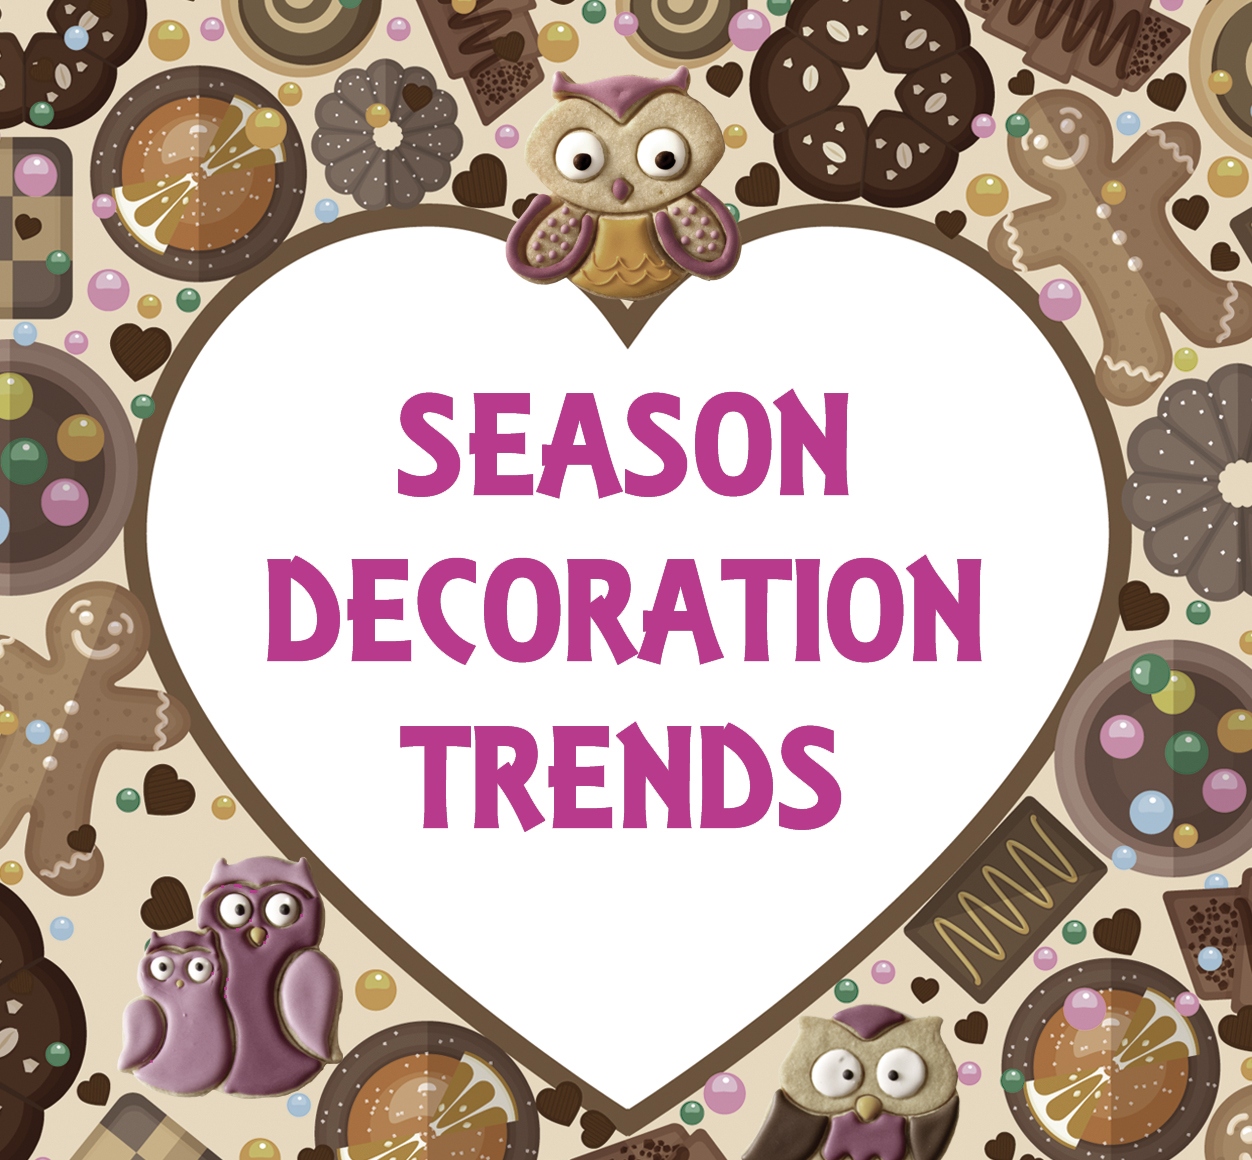 Season Decoration Trends